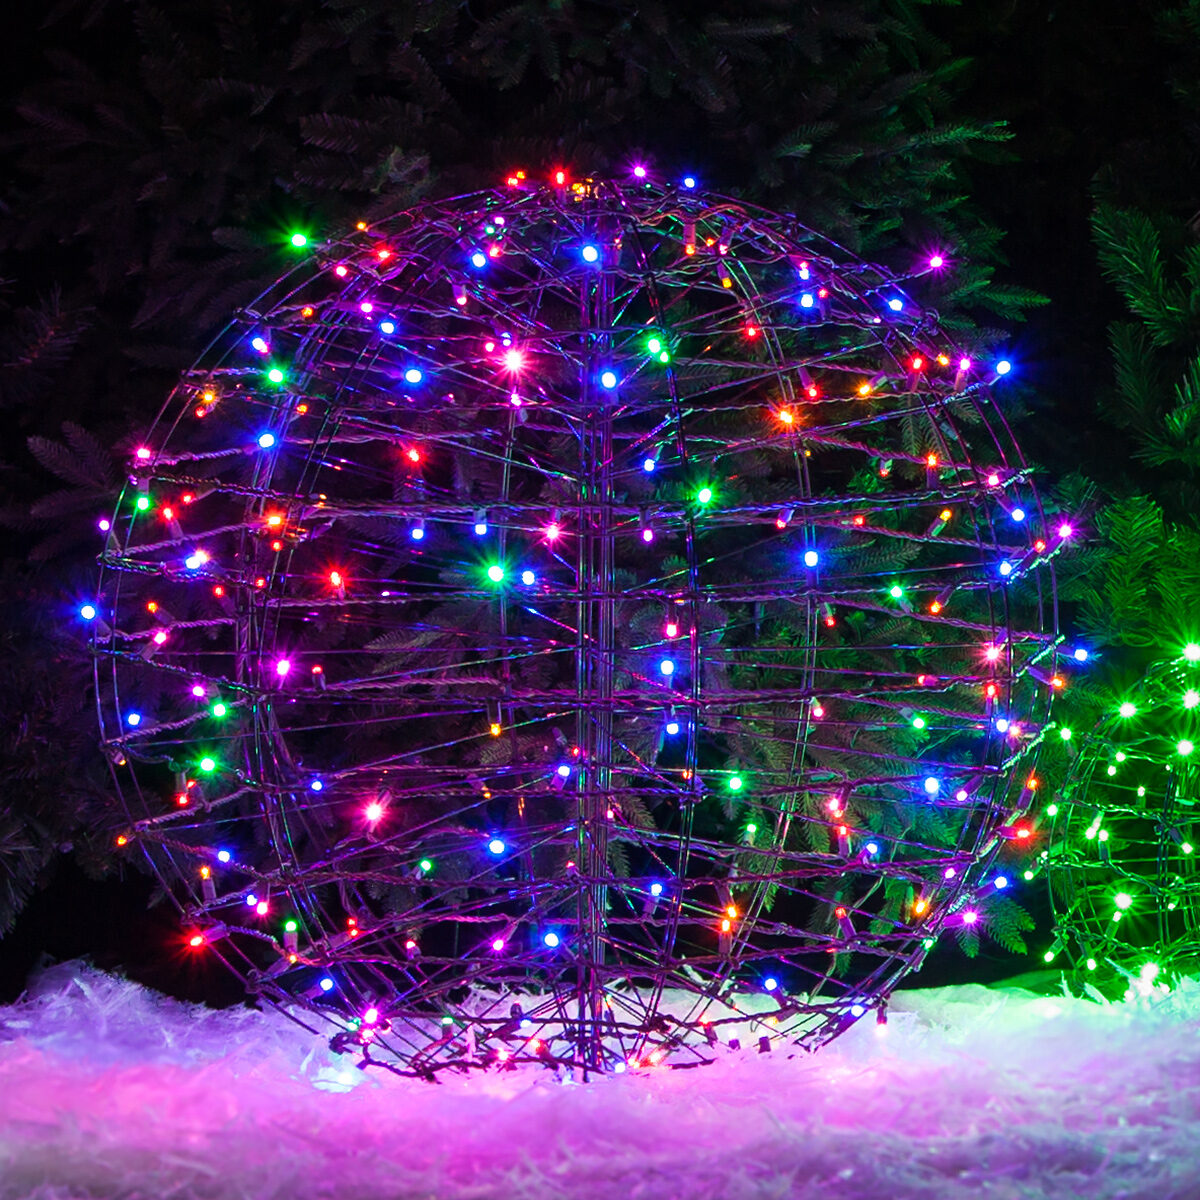 Vivid multicolor led lighted sphere placed in the yard on Christmas.